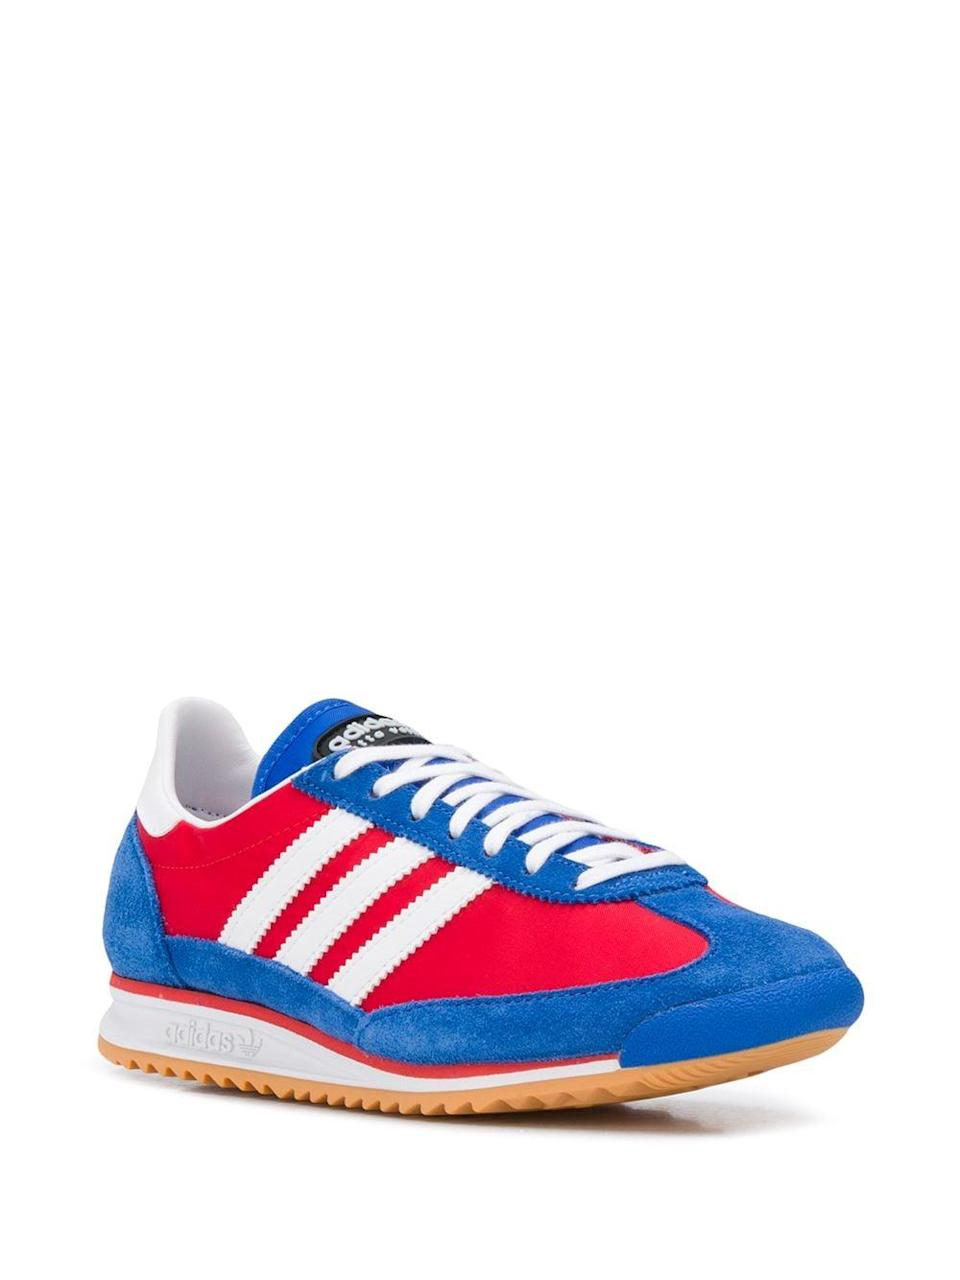 "<p><span>Adidas x Lotta Volkova Sneakers</span> ($120, originally $160)</p> <p>""I'm obsessed with these sneakers! They are so comfortable and add the perfect pop of color to my usual leggings or sweats I'm wearing these days - and of course they go great with jeans too!"" - Lisa Sugar, president and founder, POPSUGAR</p>"